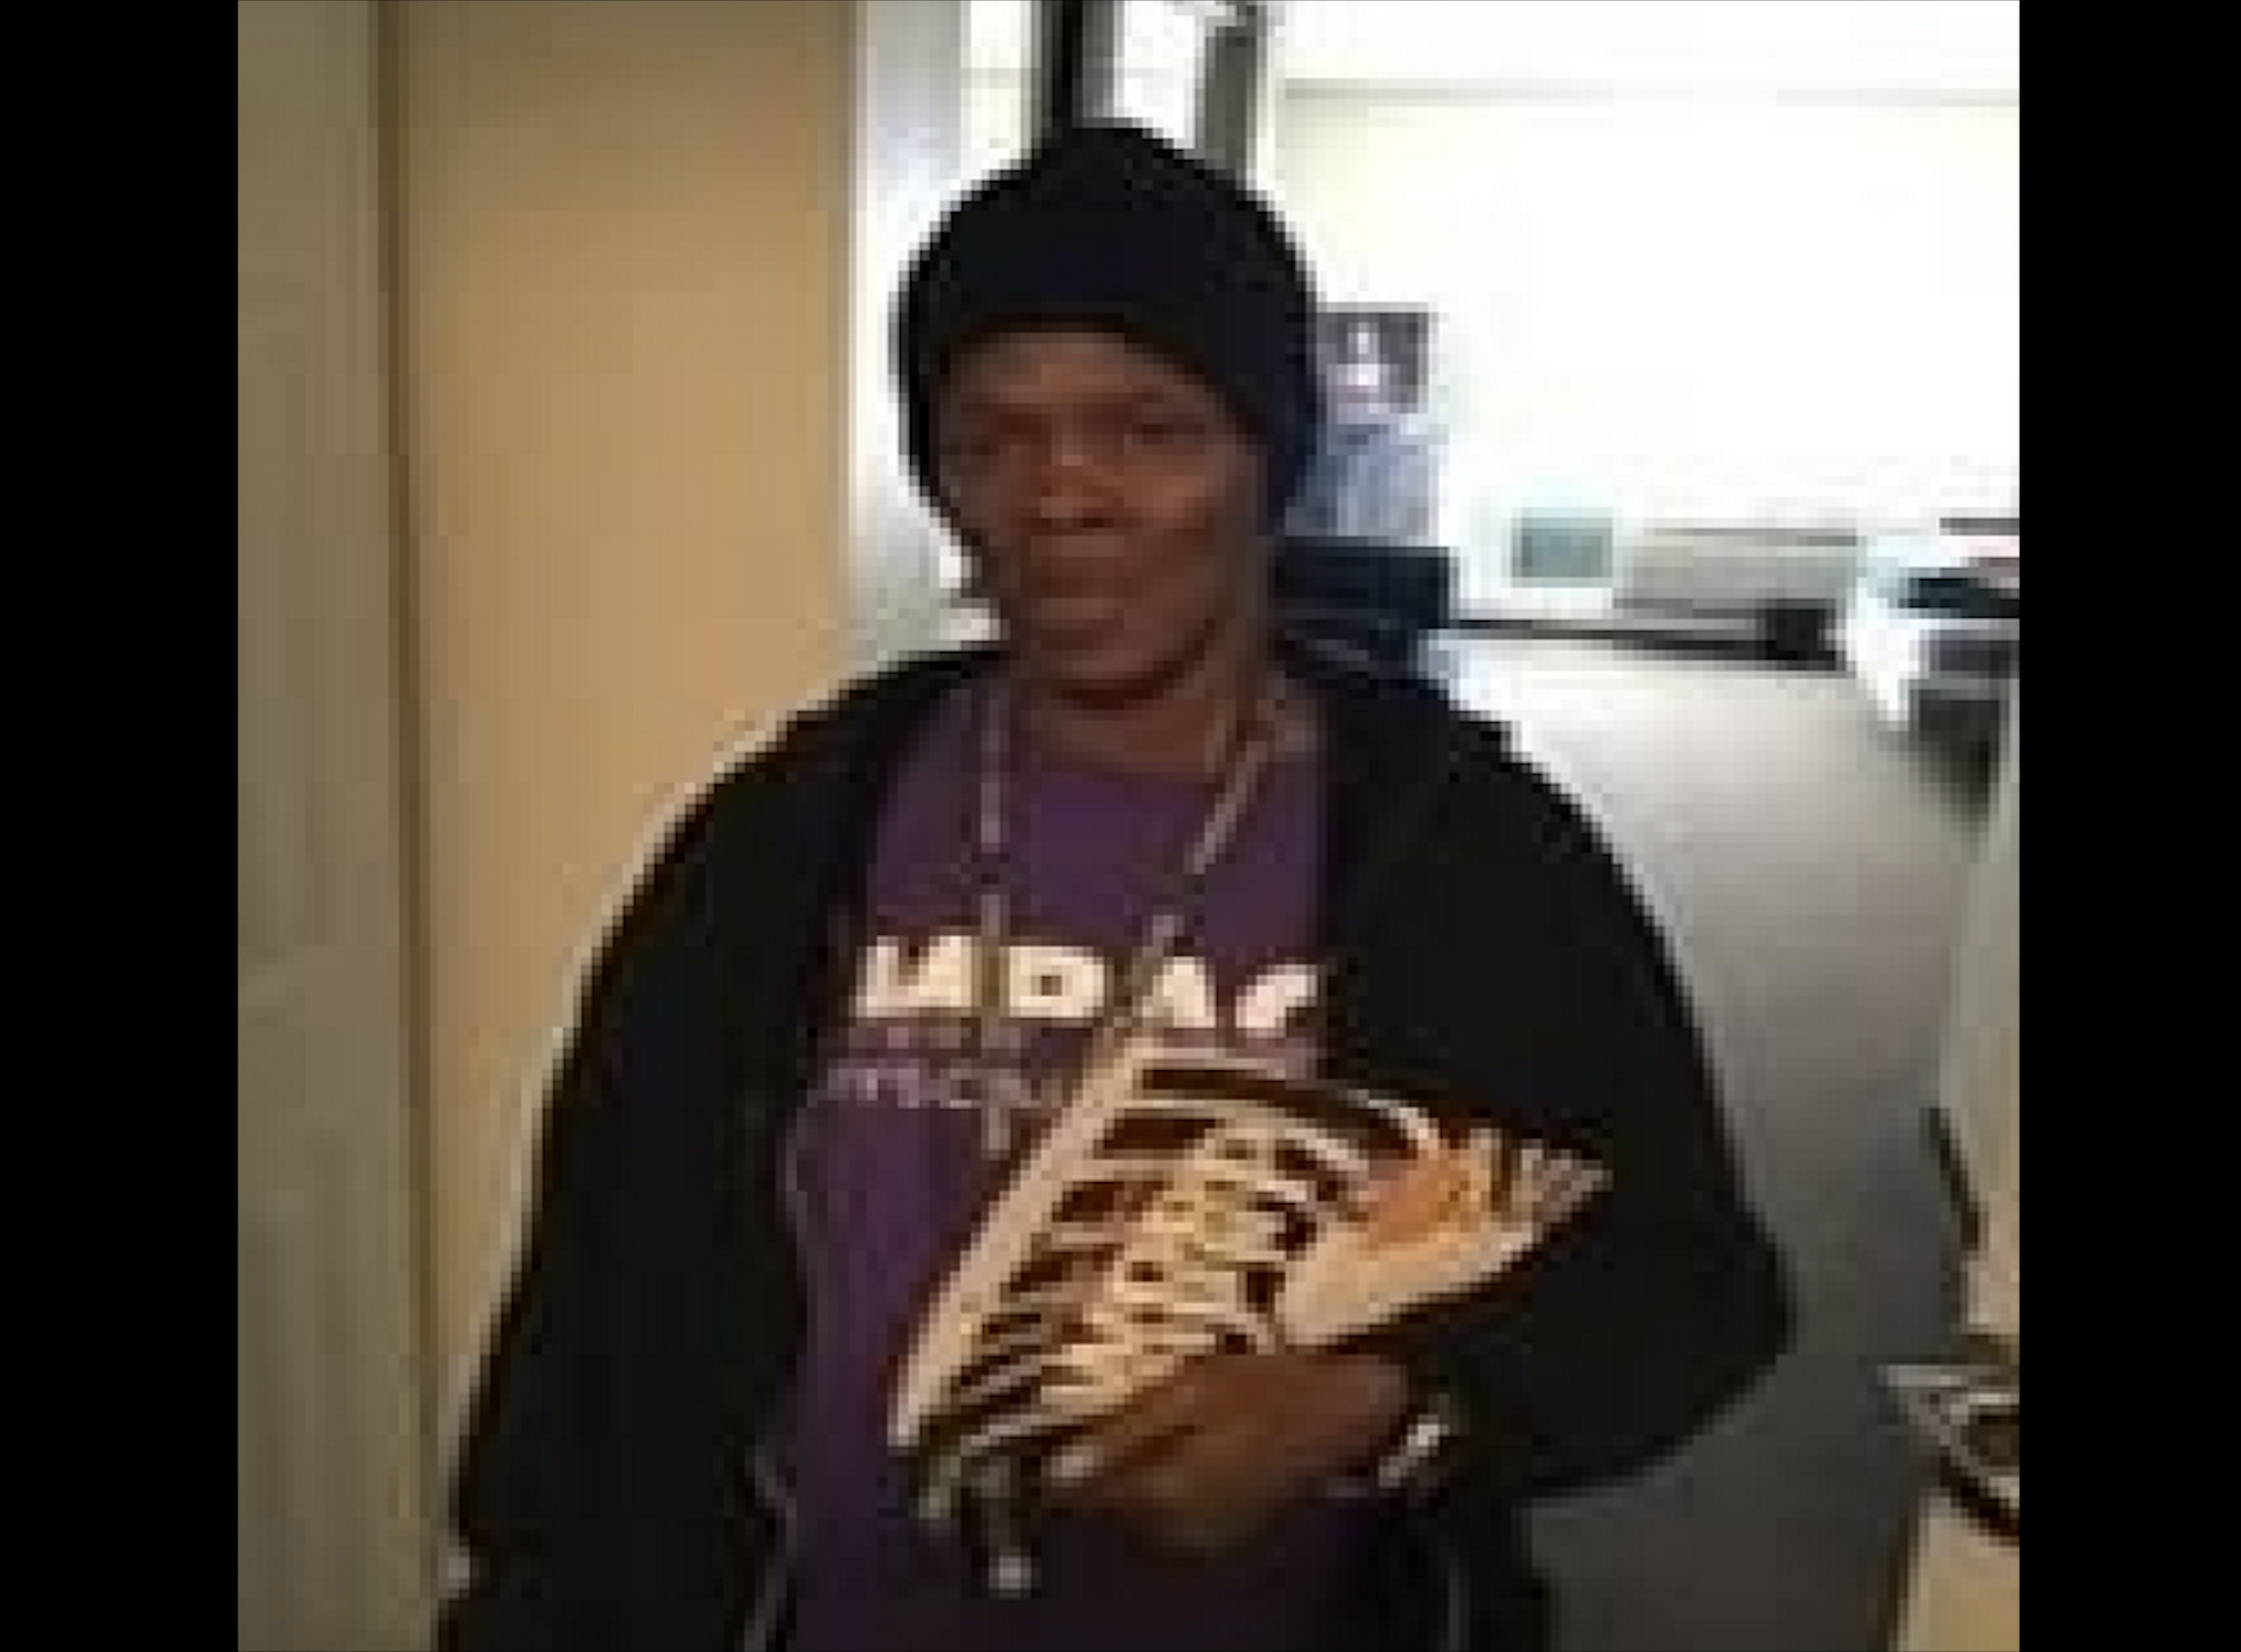 Delores Lamb was reported missing from East Garfield Park